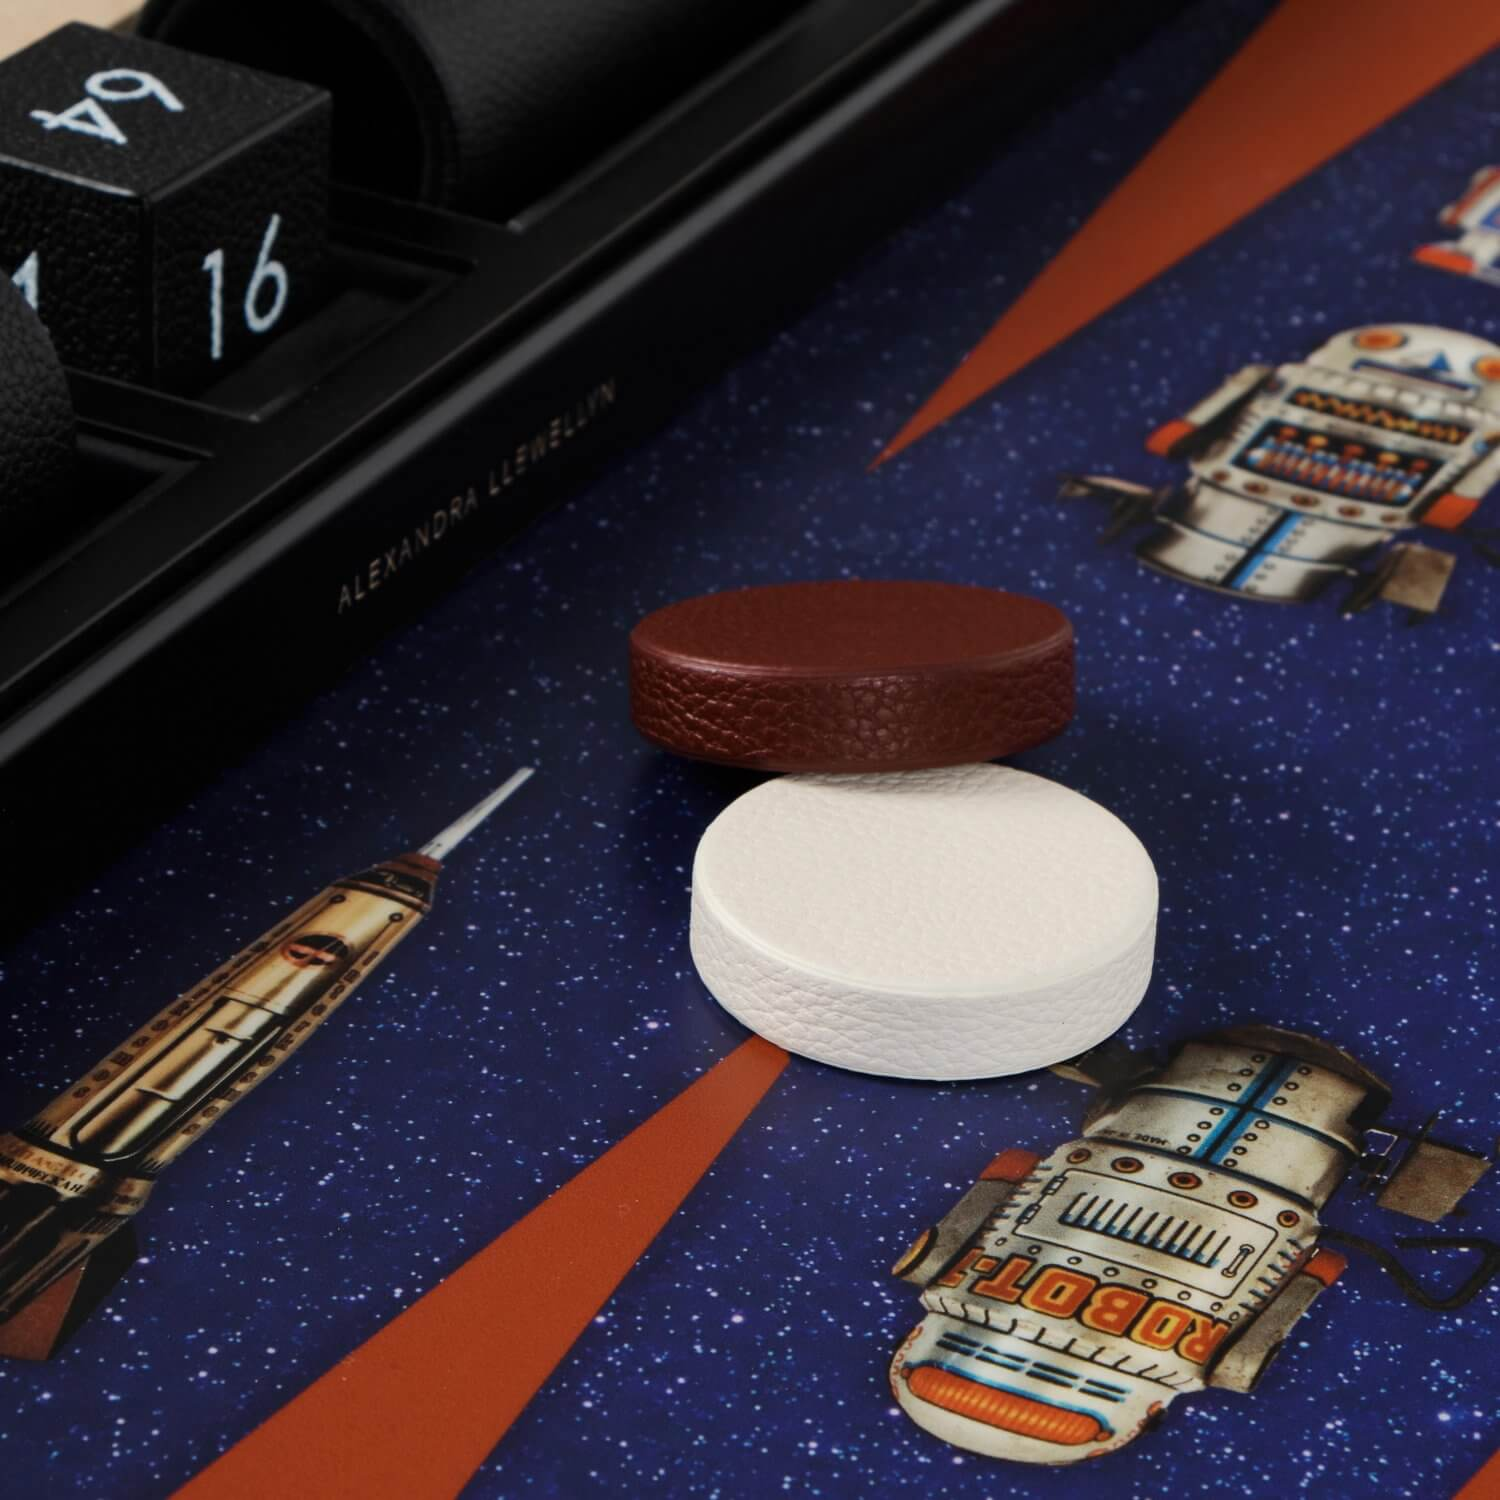 Burgundy and cream calf leather playing pieces on the Robot backgammon playing surface